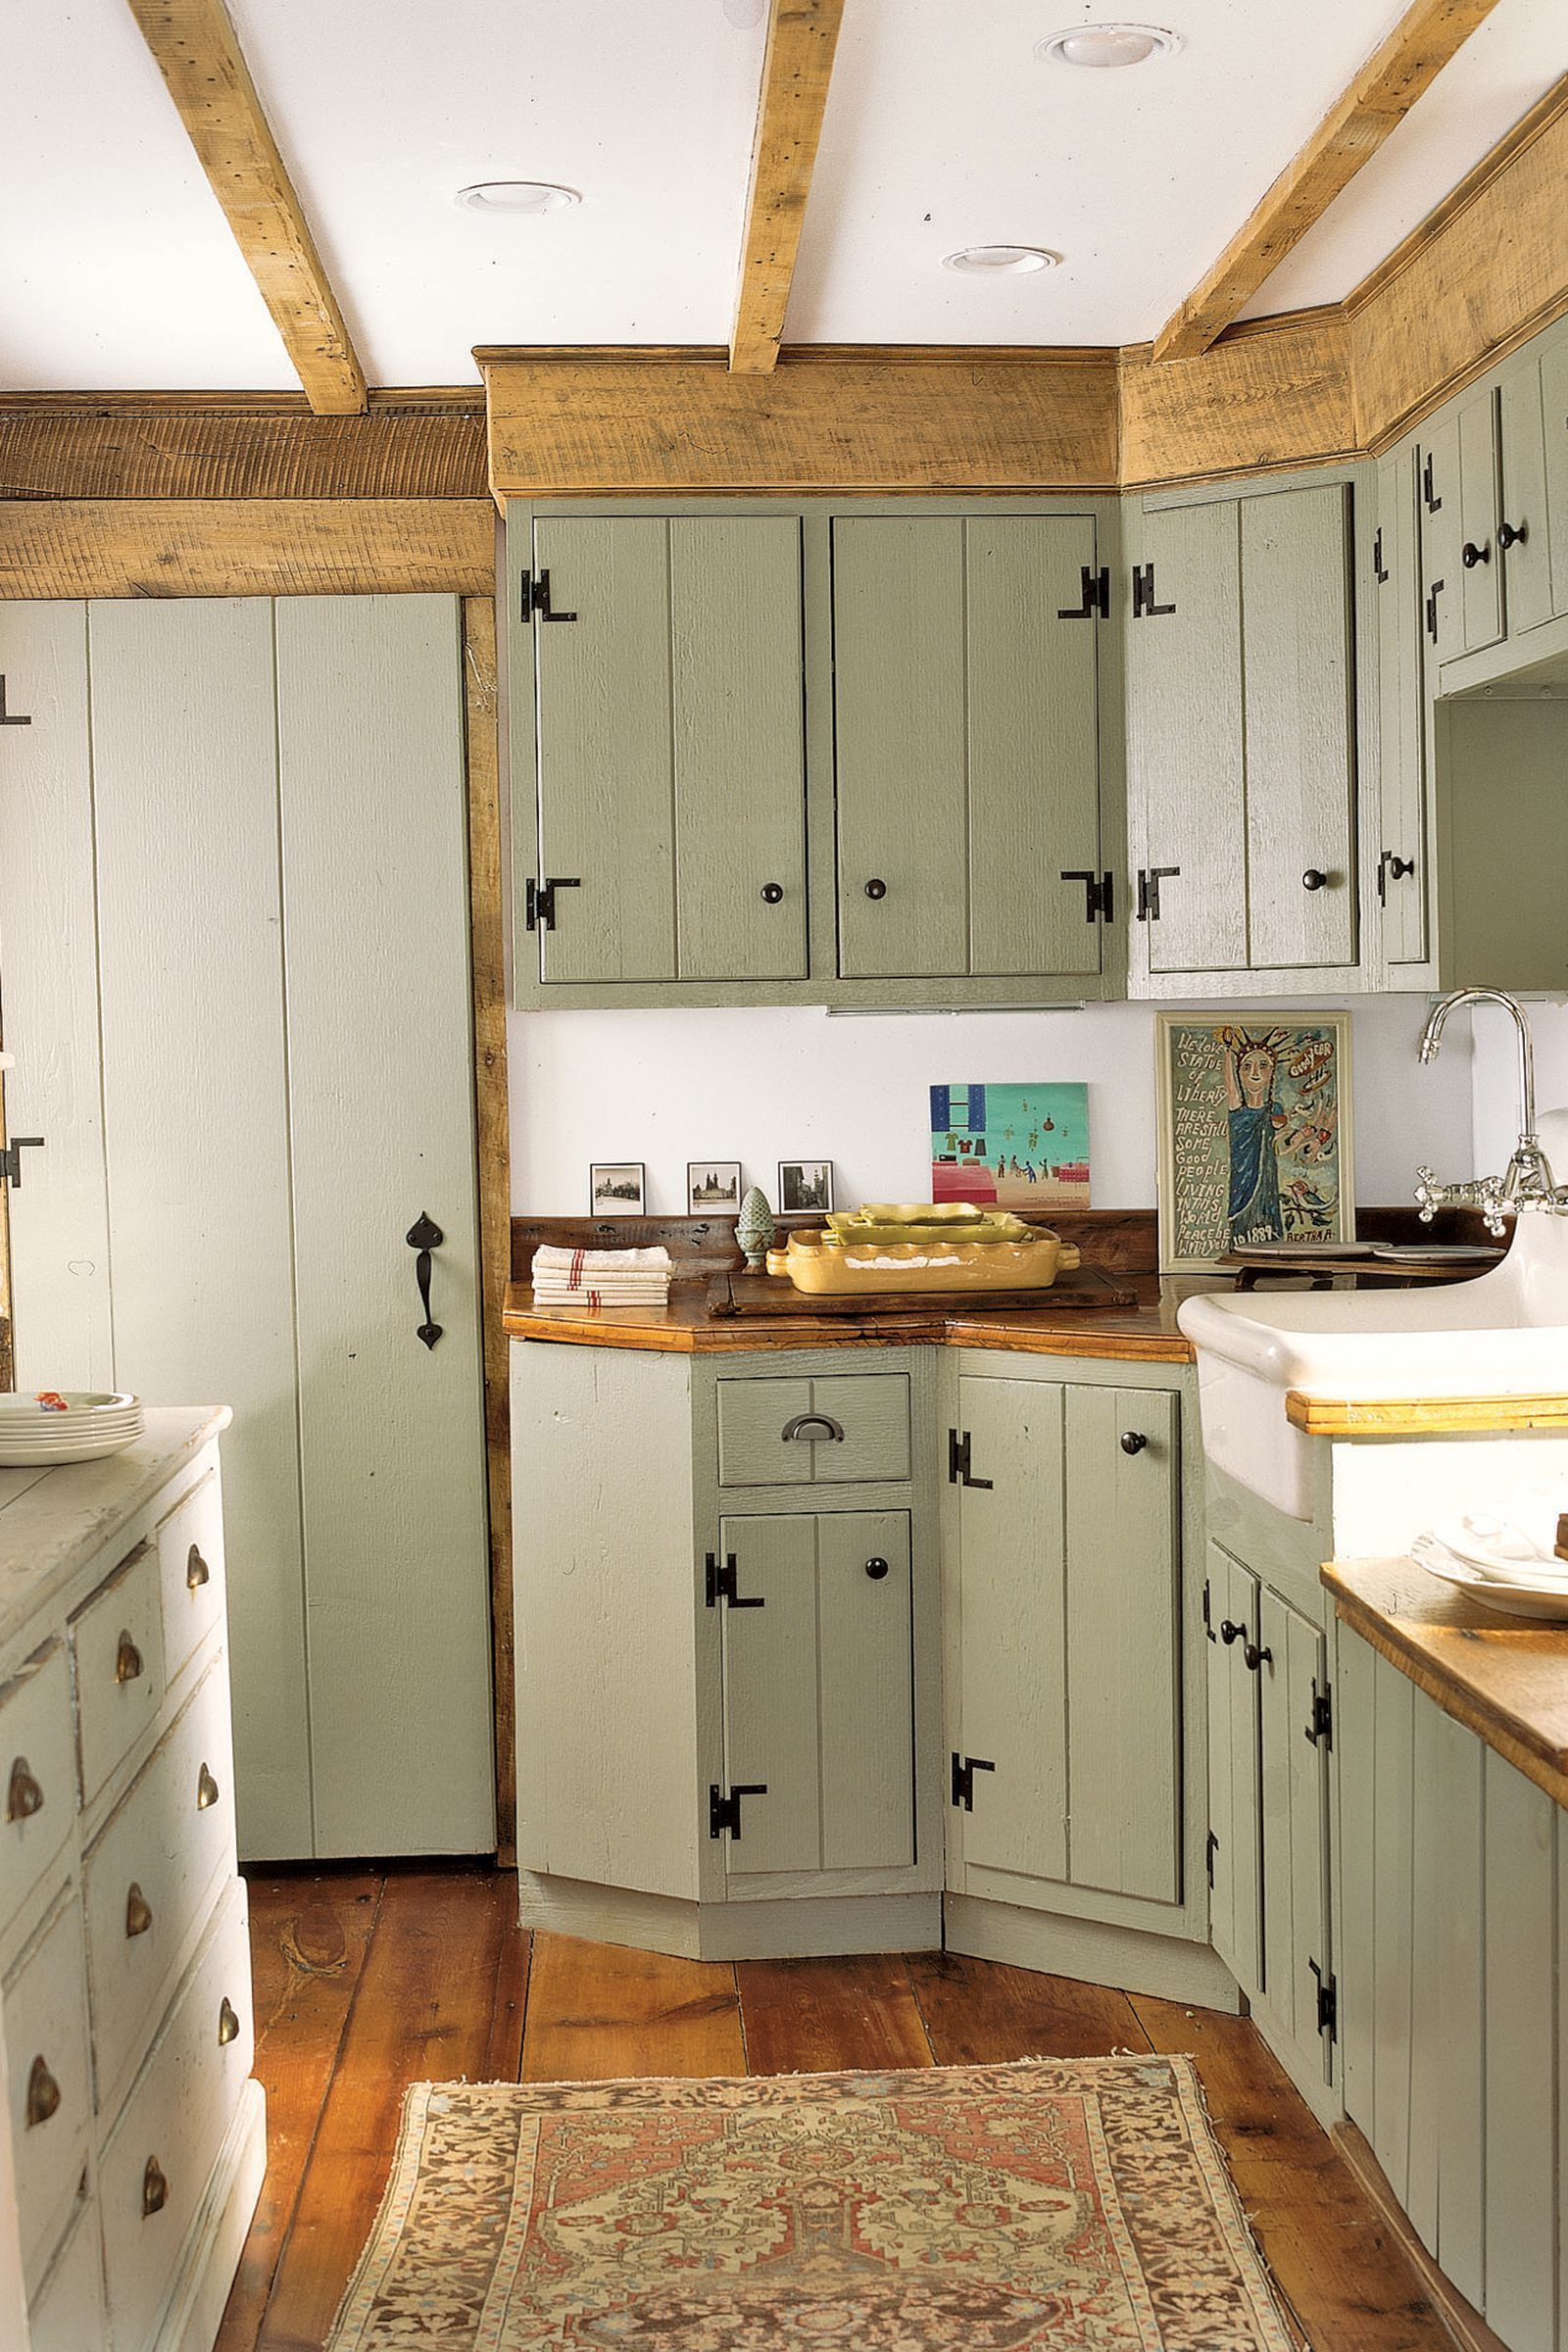 Just over the top of the cabinets whitewashed like the slats in the